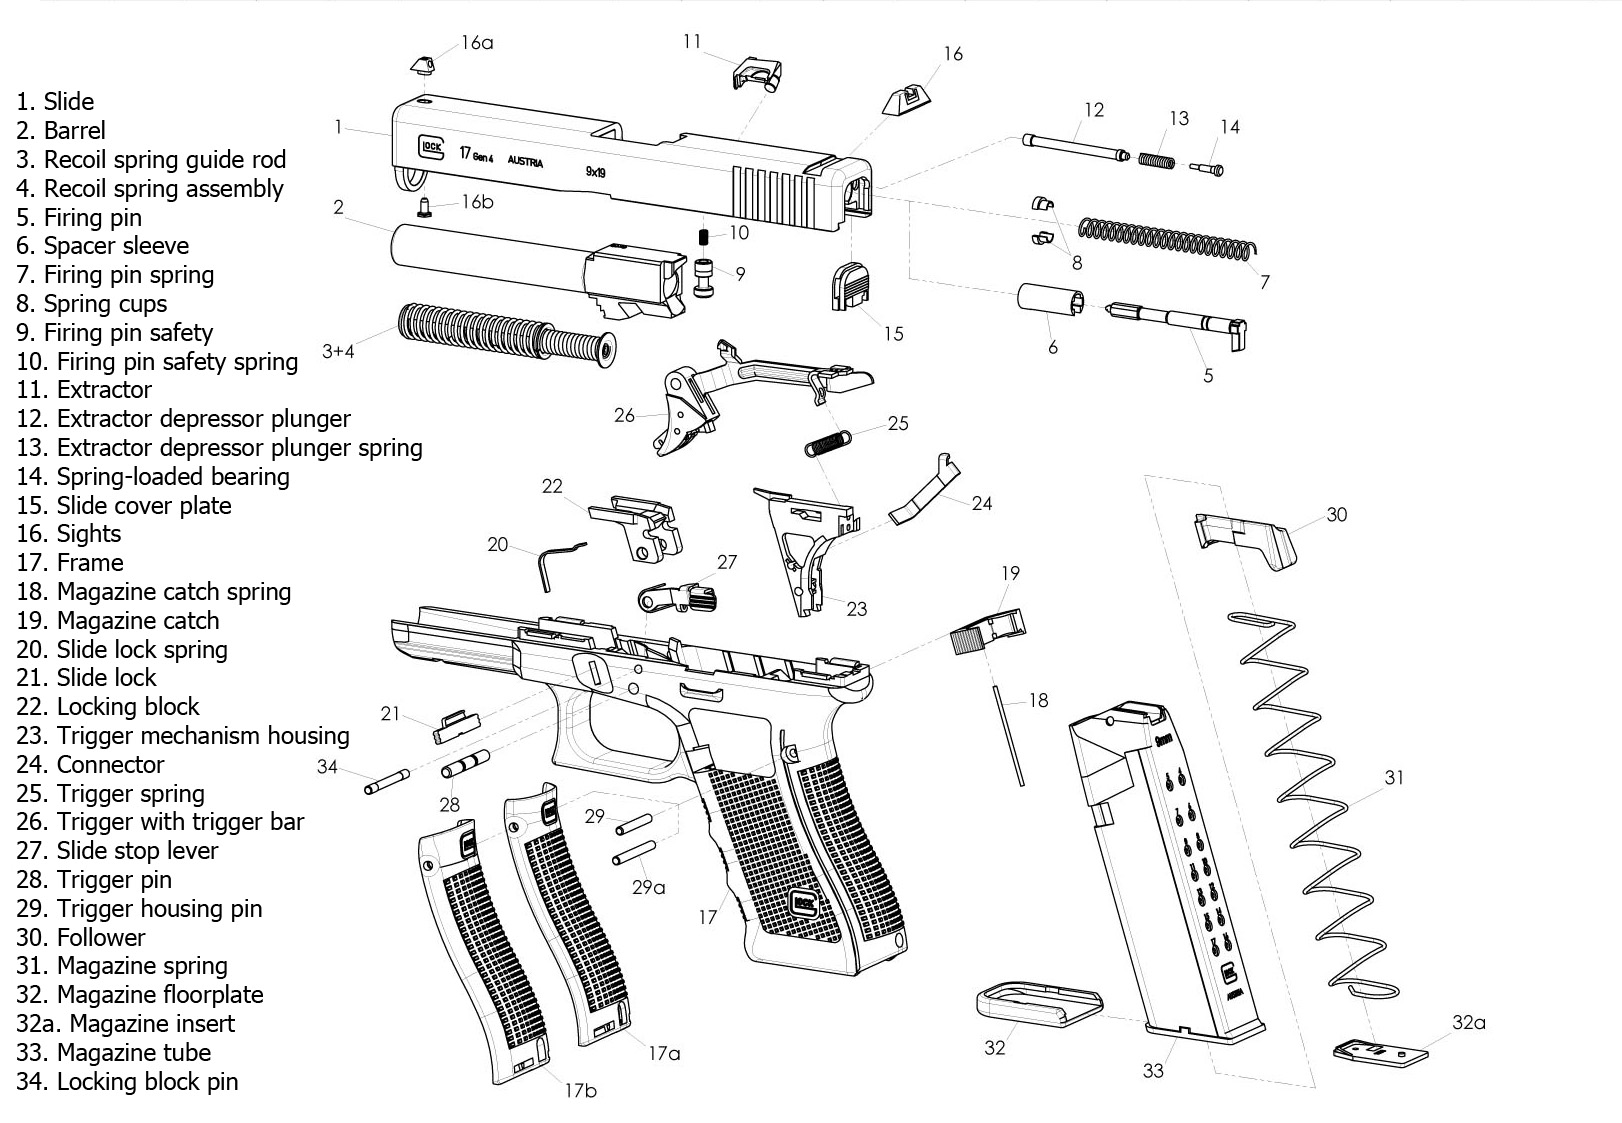 glock 17 generation 4 exploded view diagram muzzle first rh muzzlefirst com glock 23 breakdown diagram glock 23 gen 3 diagram